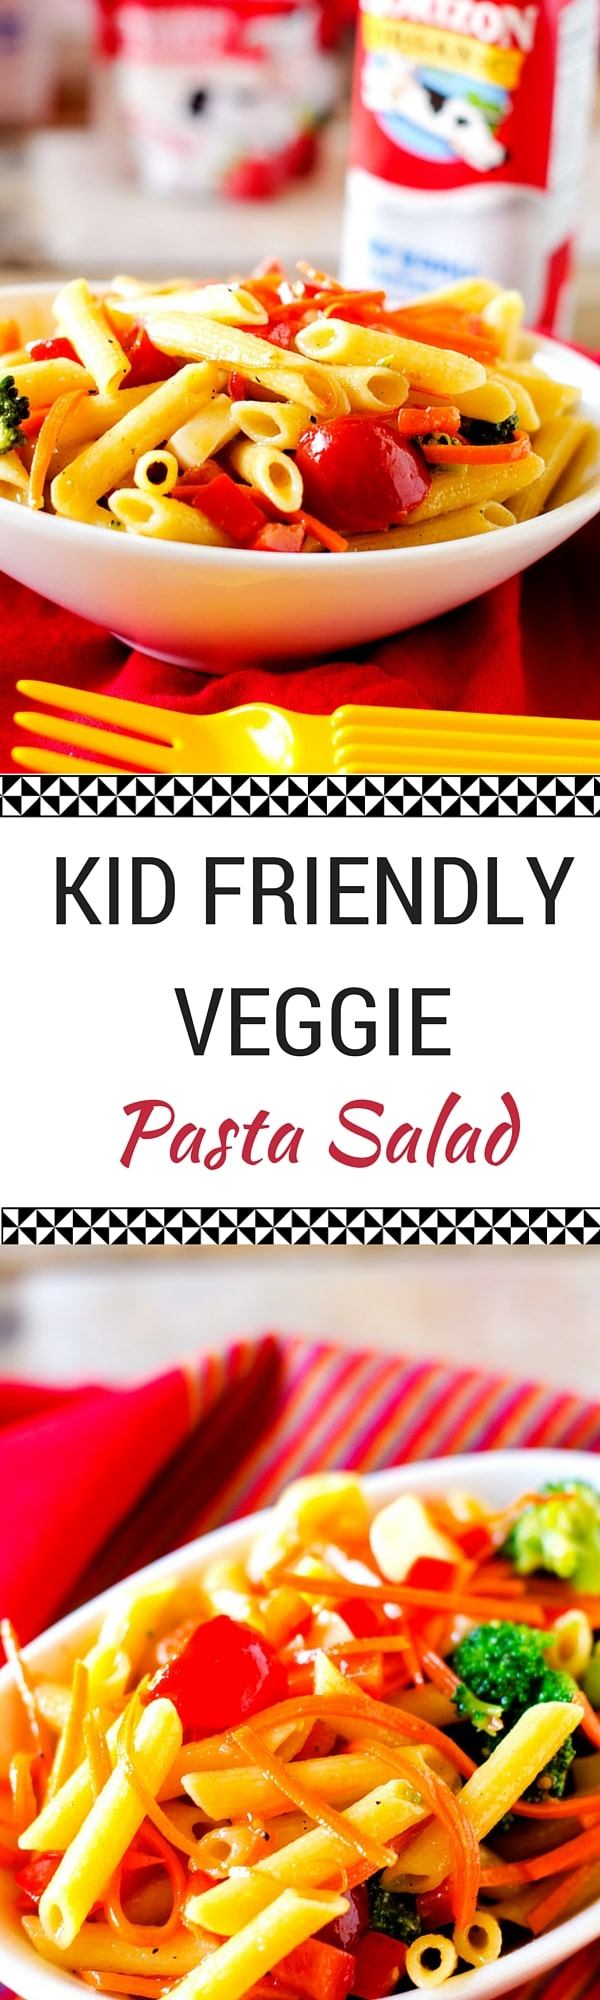 Have a Kid Friendly Horizon Lunch with this Veggie Pasta Salad - Horizon takes the stress out of packing lunch for busy moms. My kids love their products and I feel good about them!